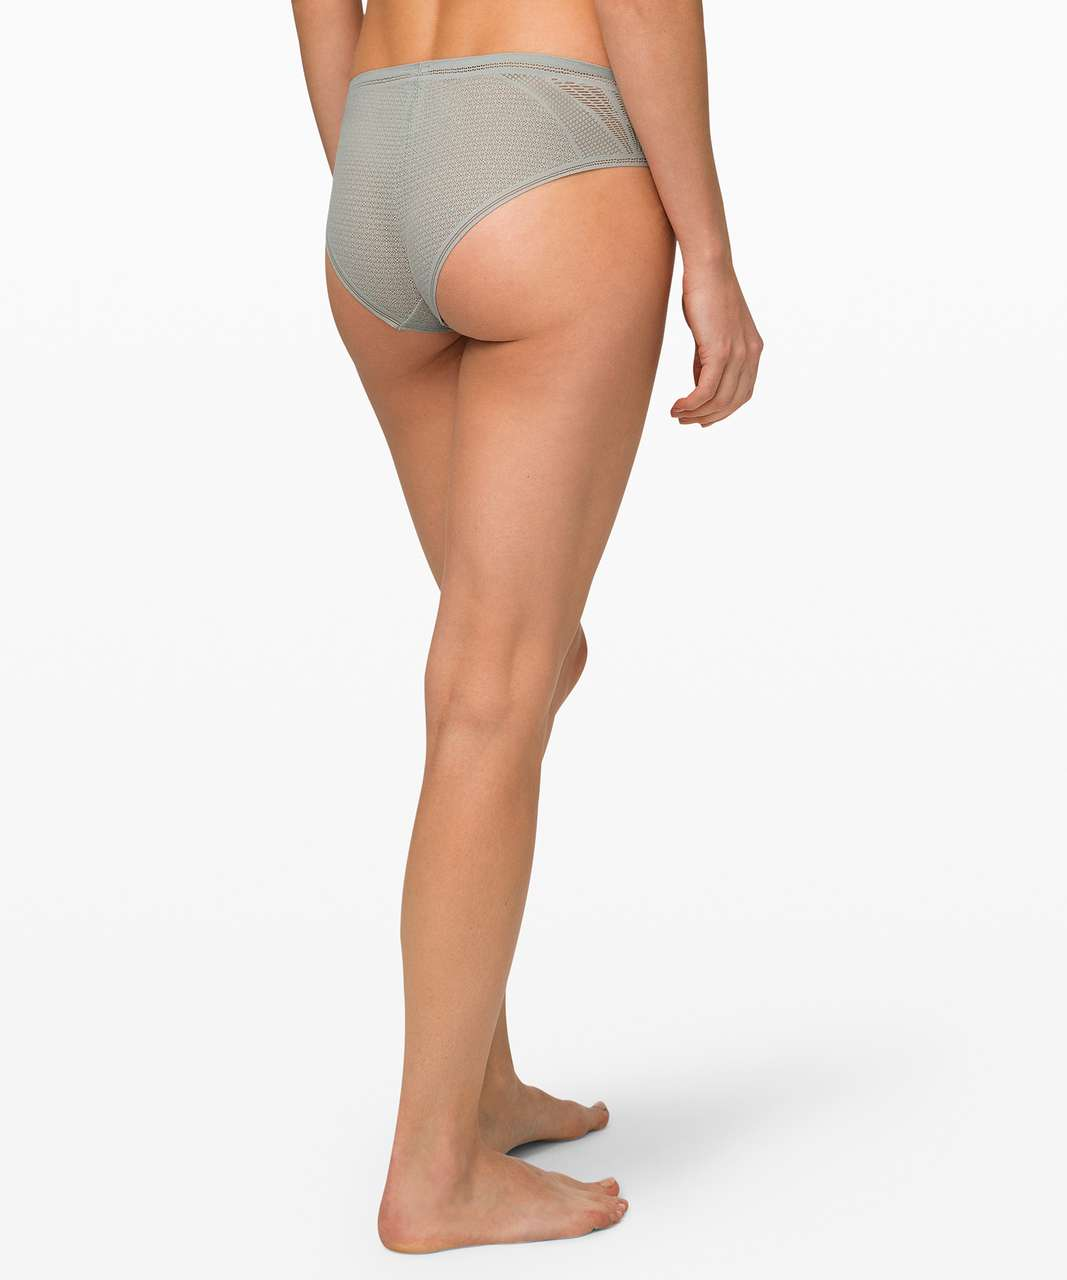 Lululemon Awake to Lace Cheeky Bikini - Jade Grey